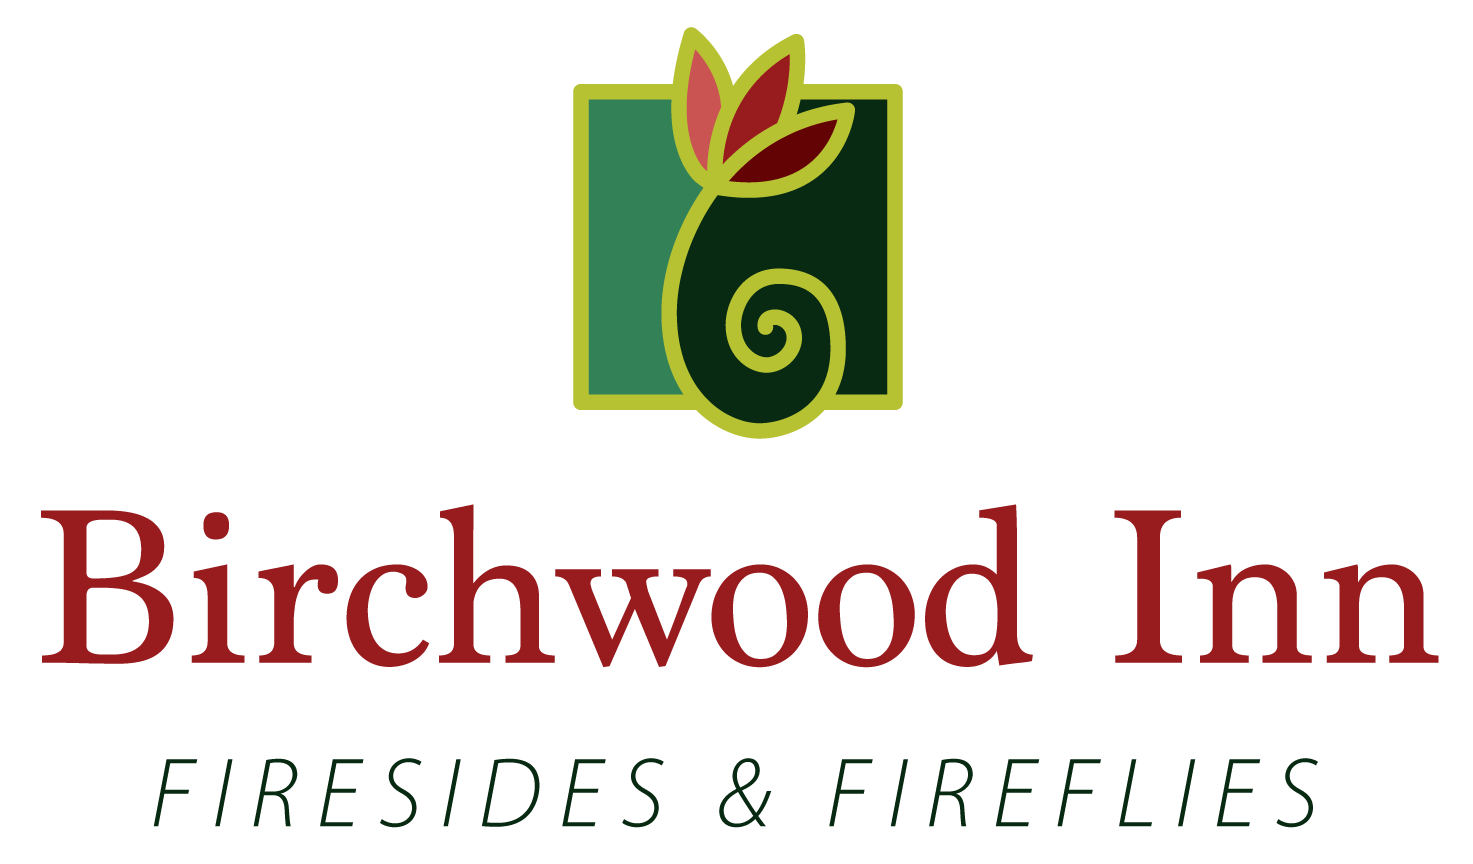 Birchwood Inn